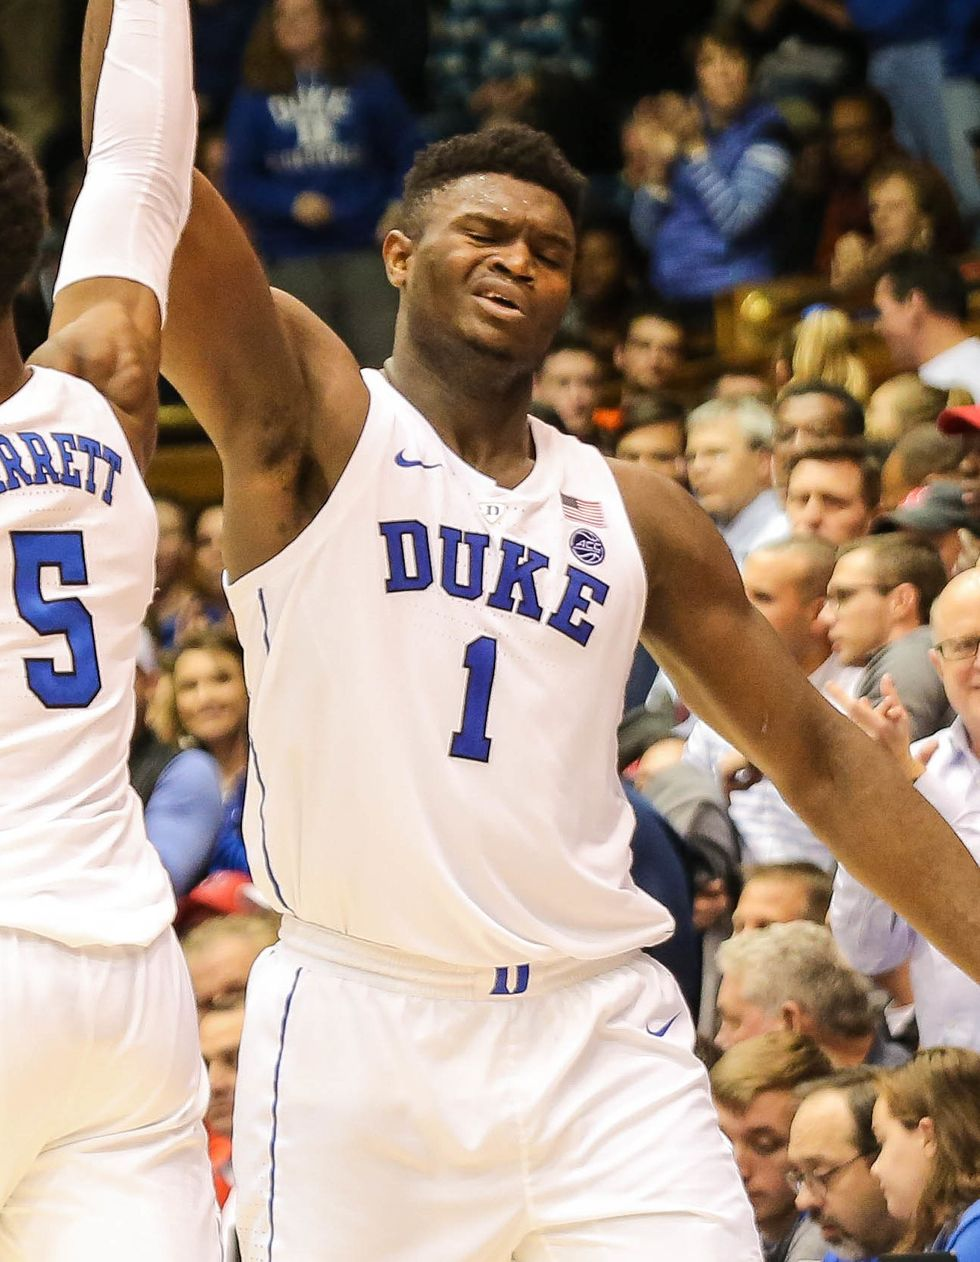 2019 NBA Draft And Free Agency Look To Make Things Interesting